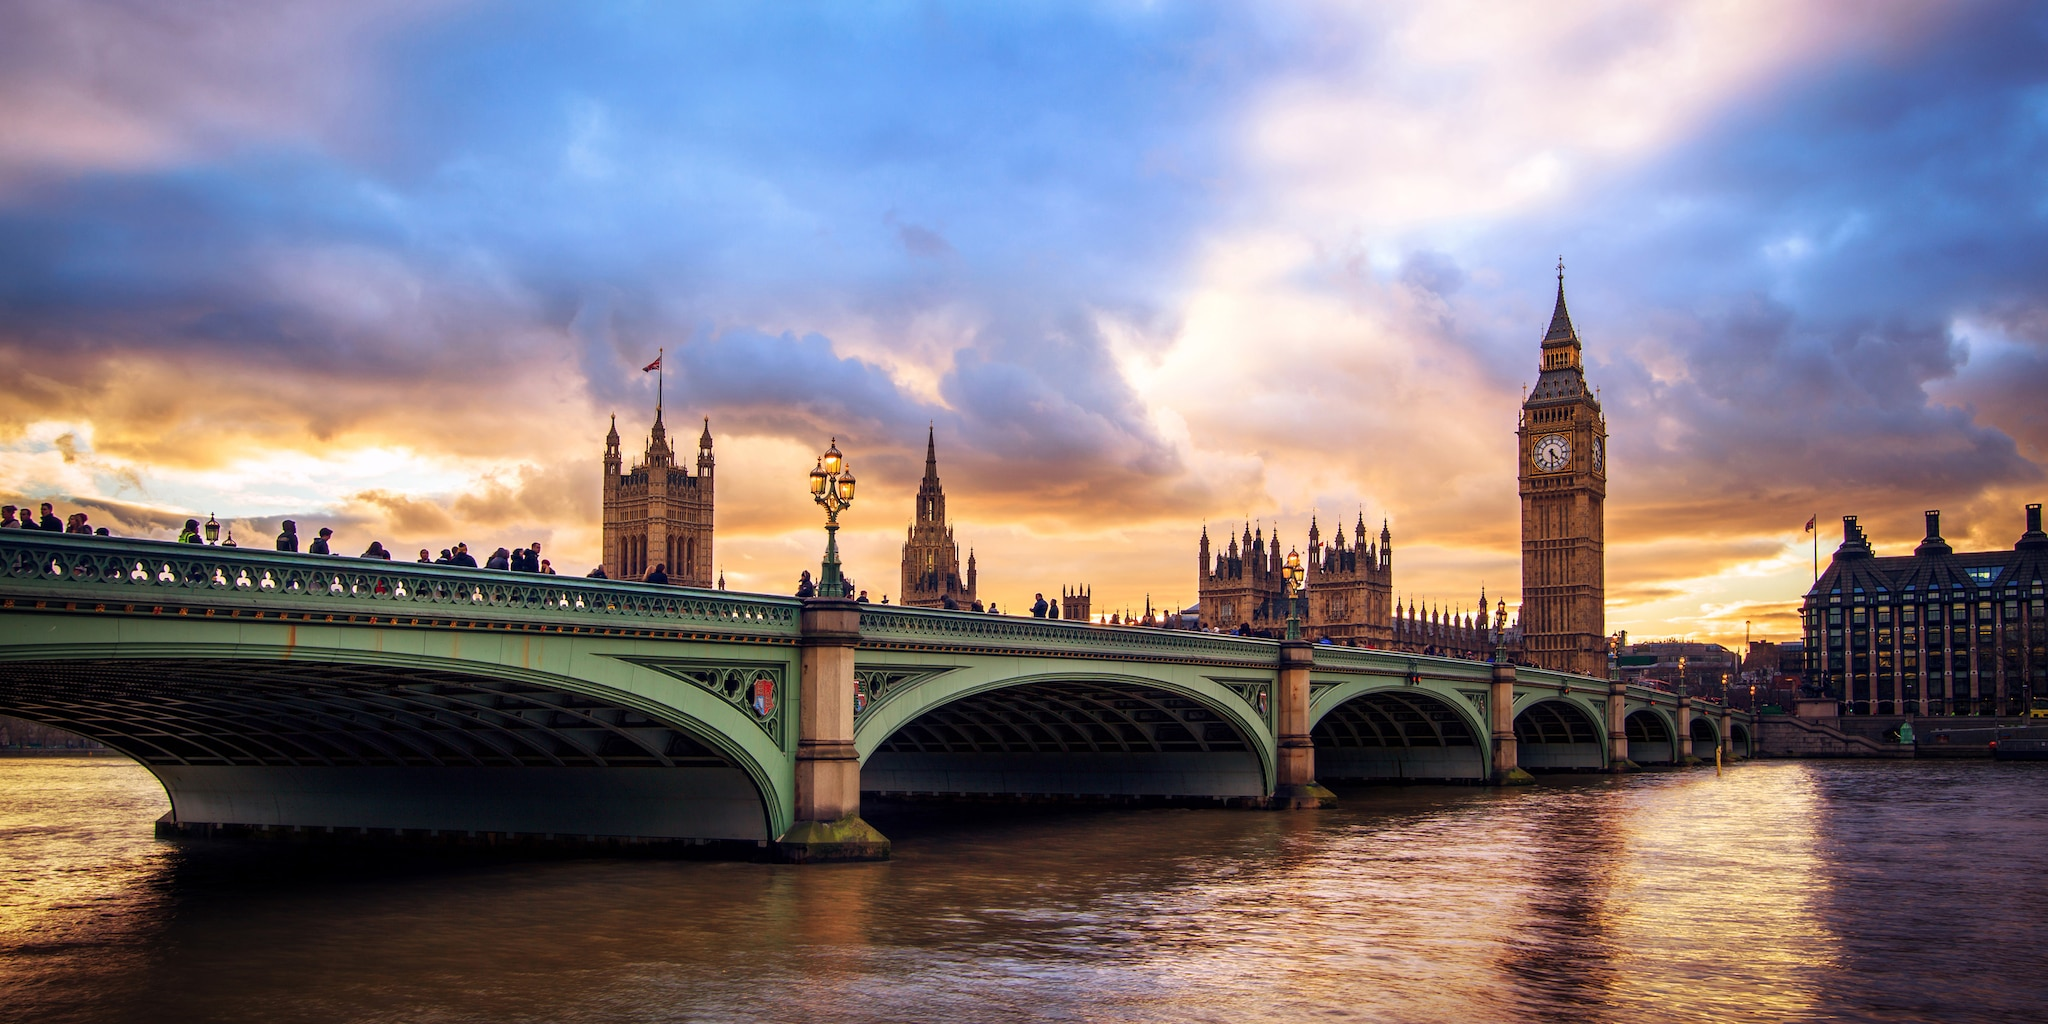 The River Thames with Big Ben in the background